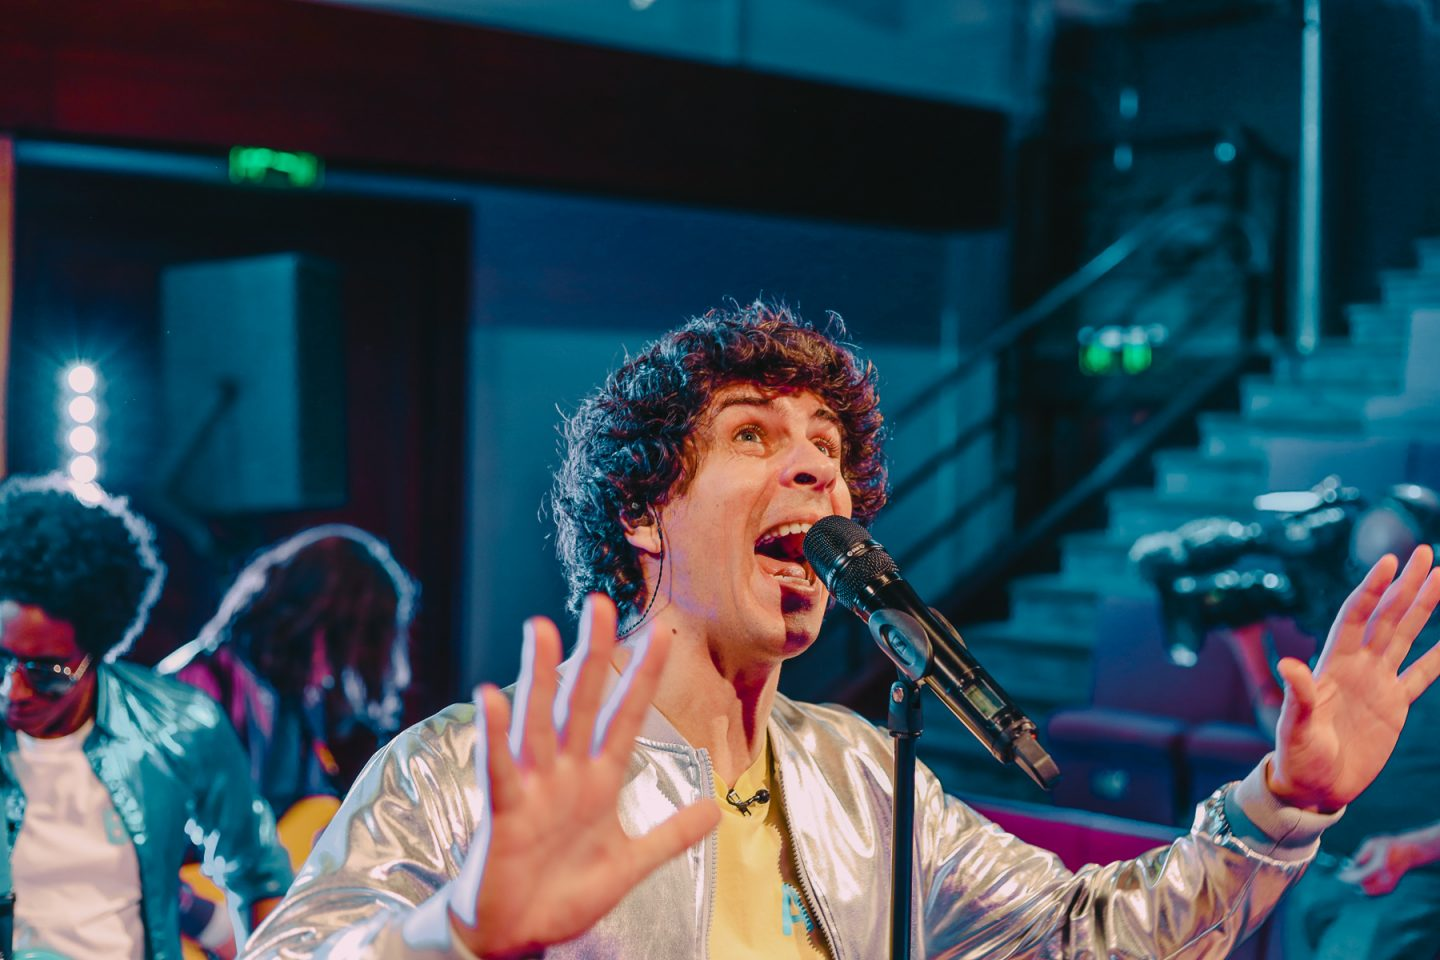 Andy Day singing - Andy and The Band TV programme, Andy and The Odd Socks